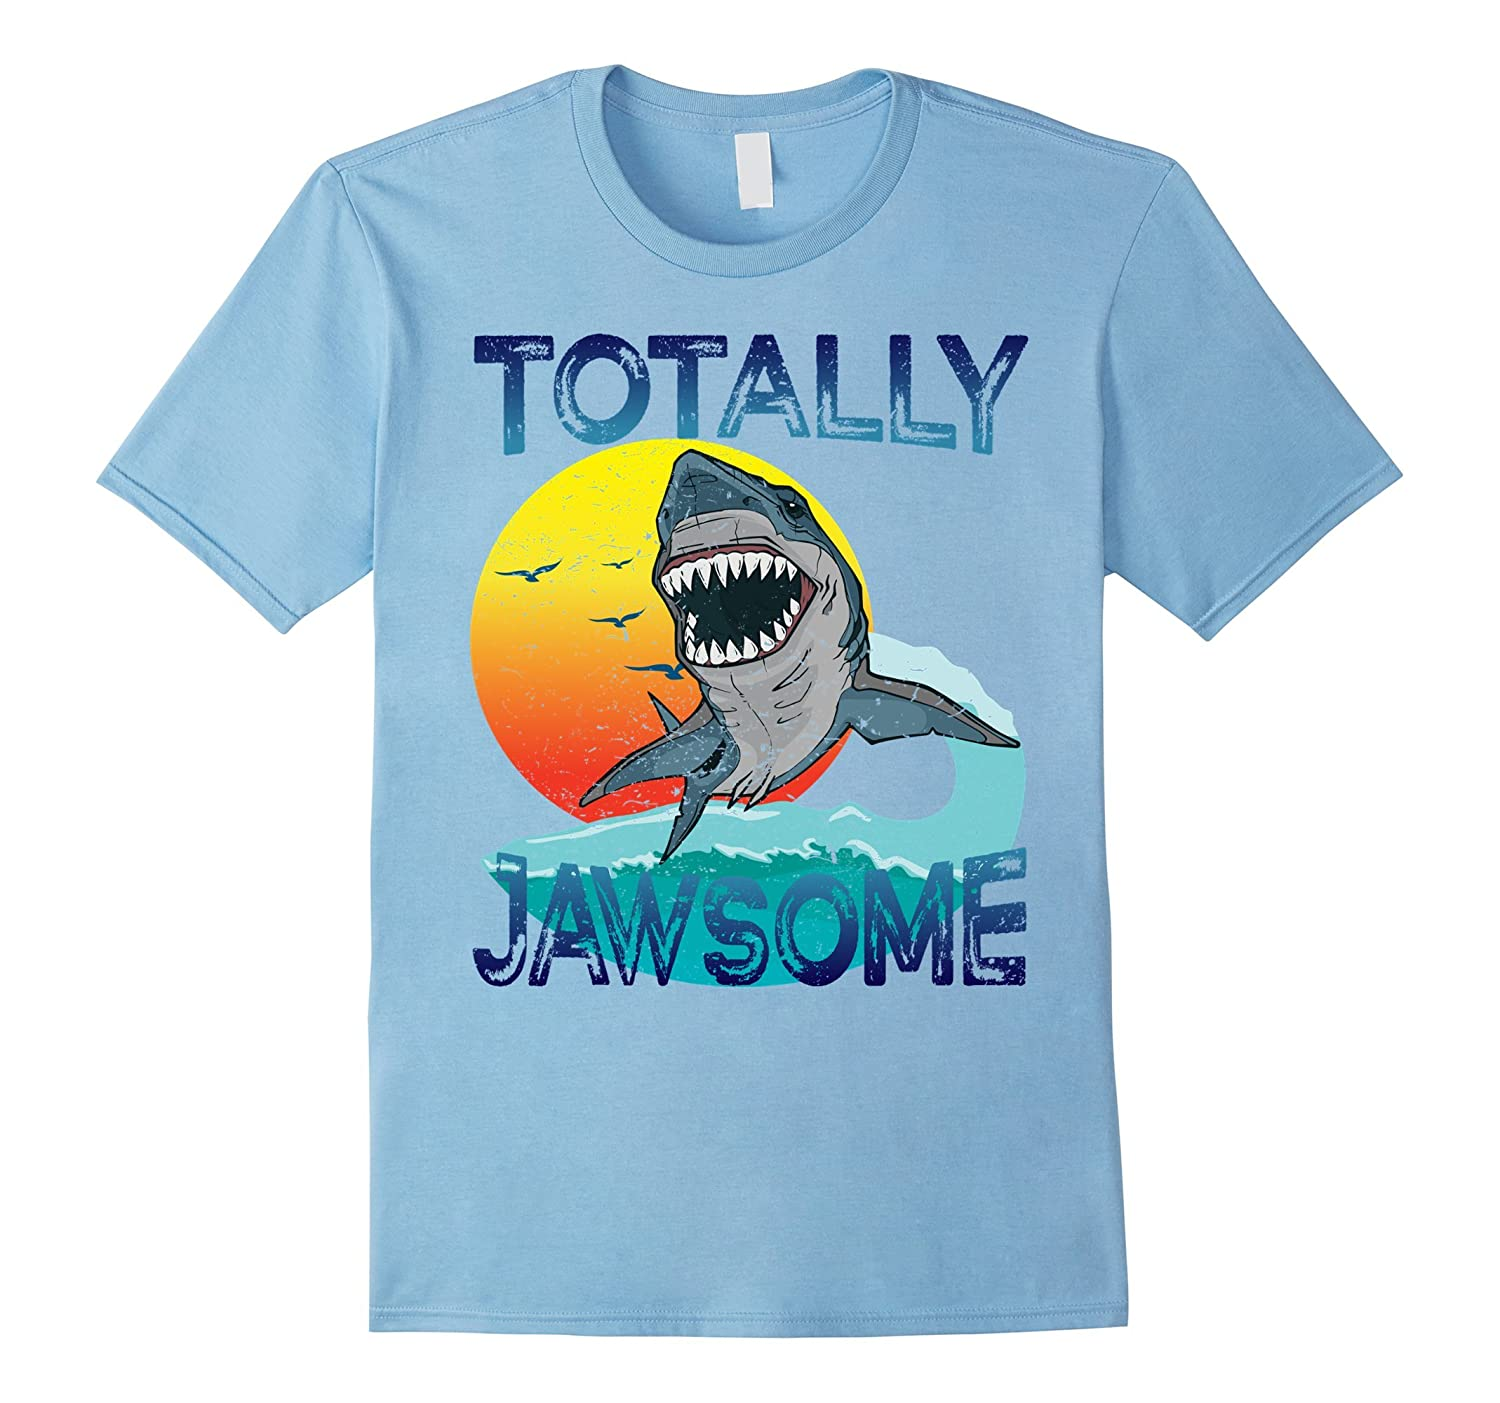 Totally Jawsome Cool Shark T-shirt for Men Women and Kids-CD